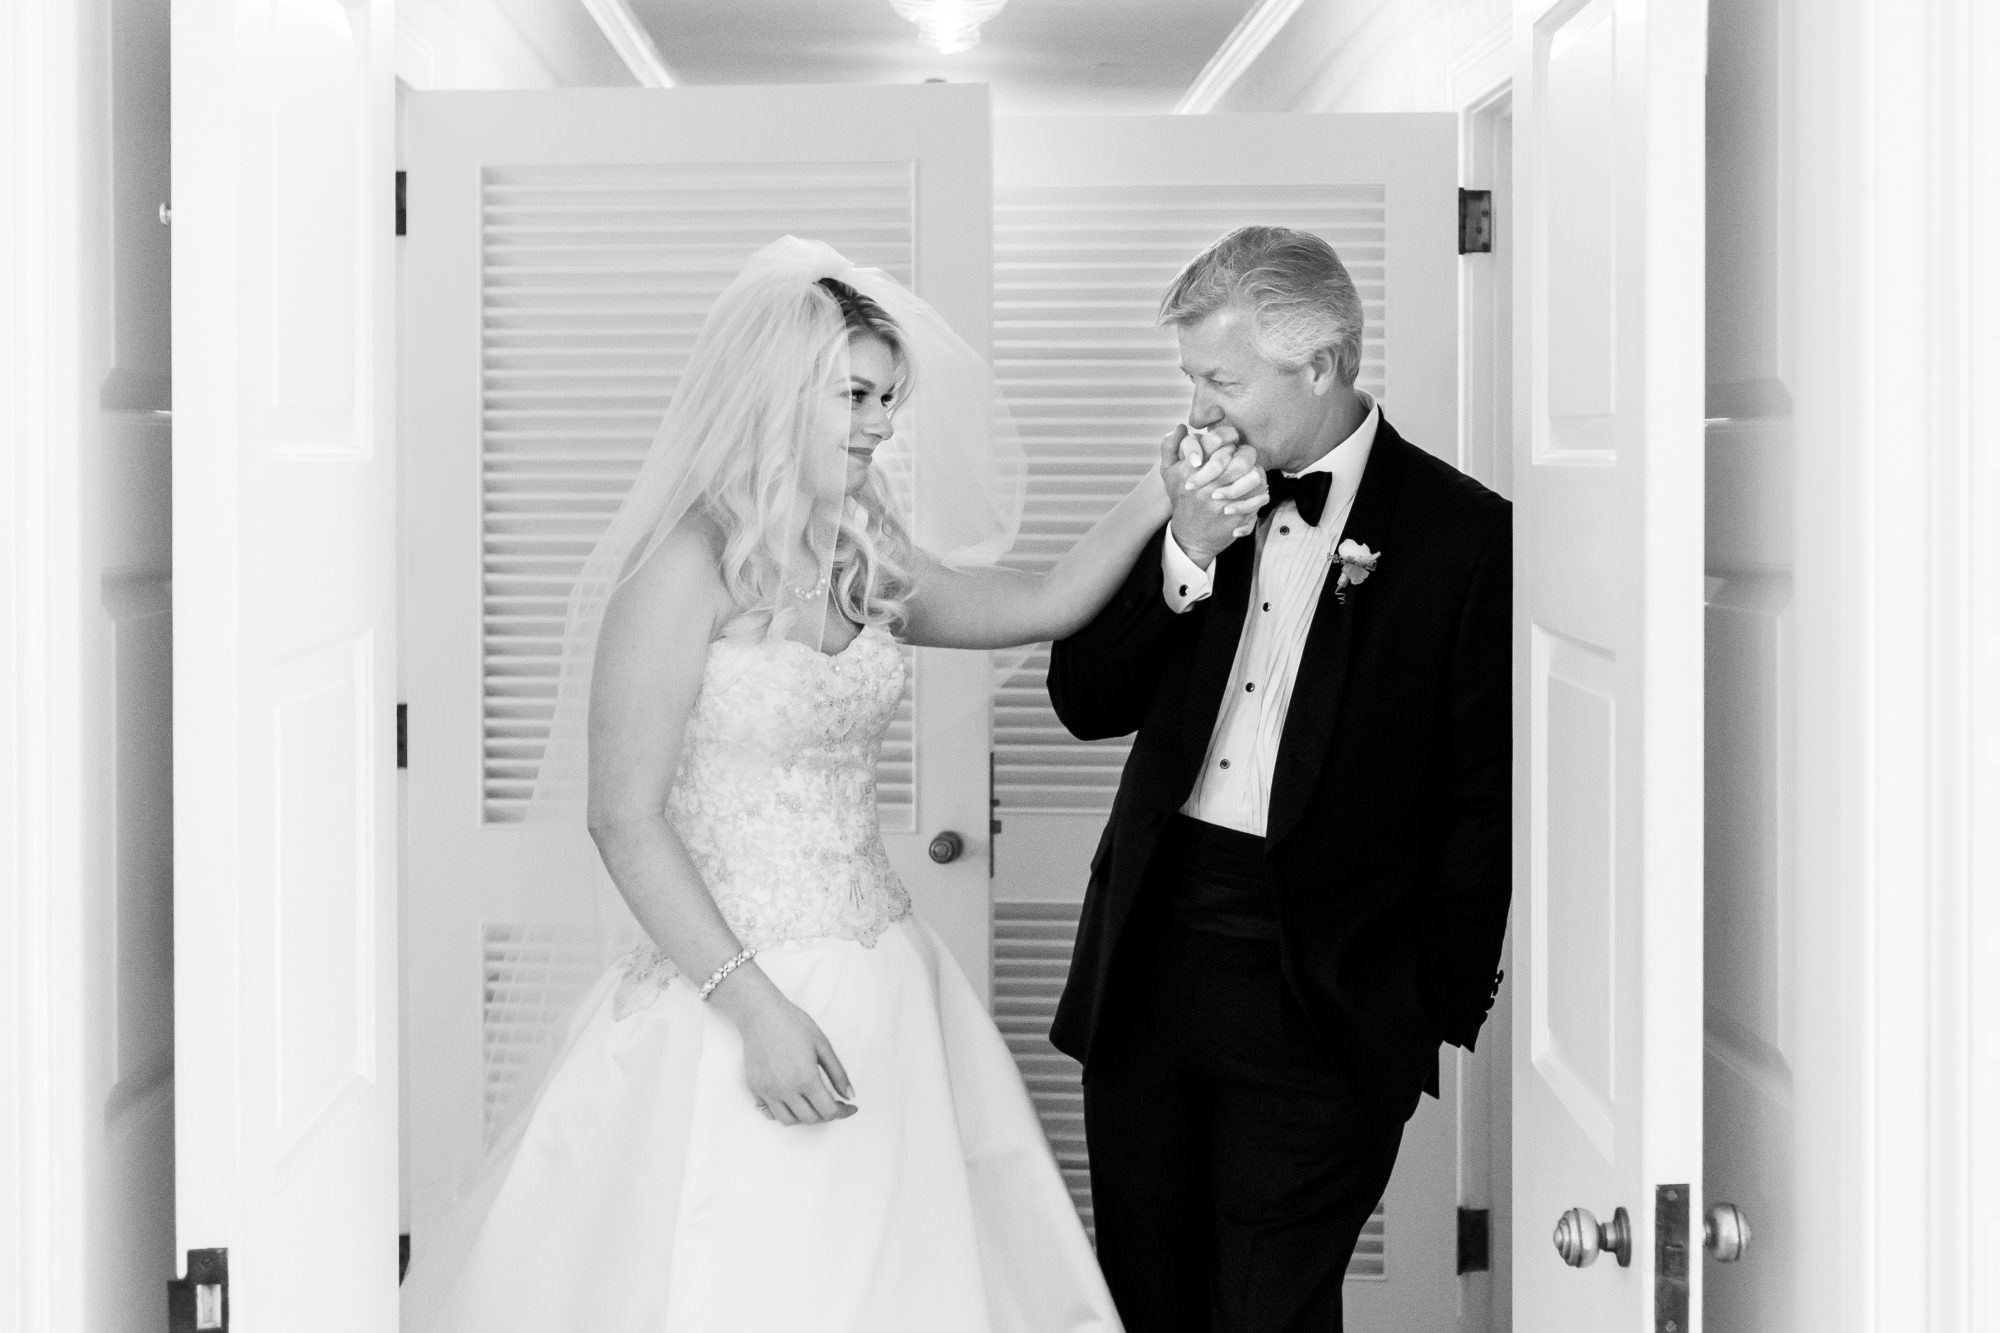 006-country-club-cleveland-wedding-photographer-genevieve-nisly-photography copy